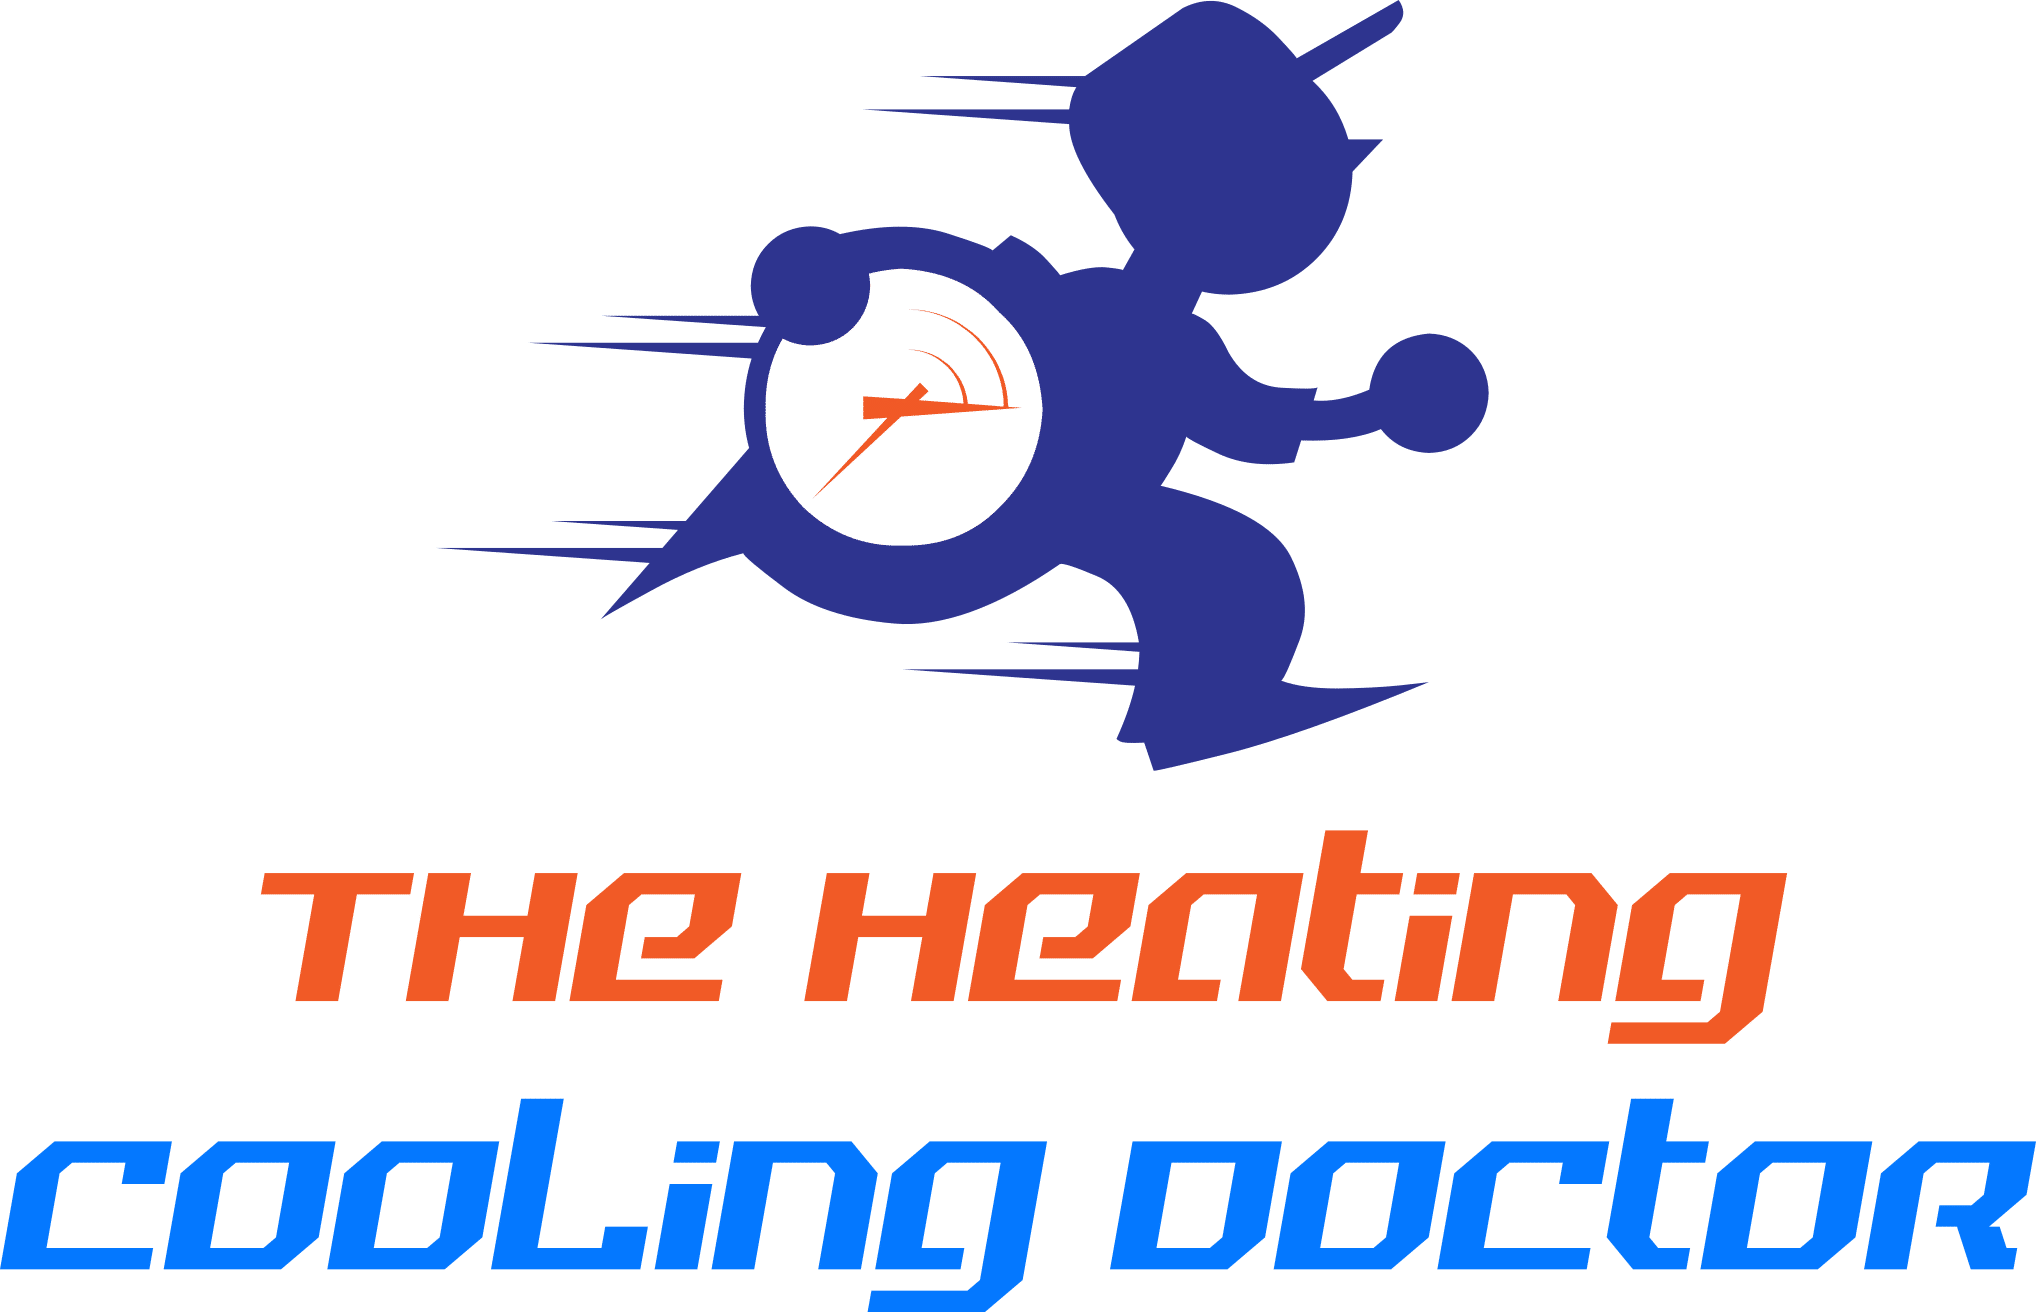 The heating cooling doctor